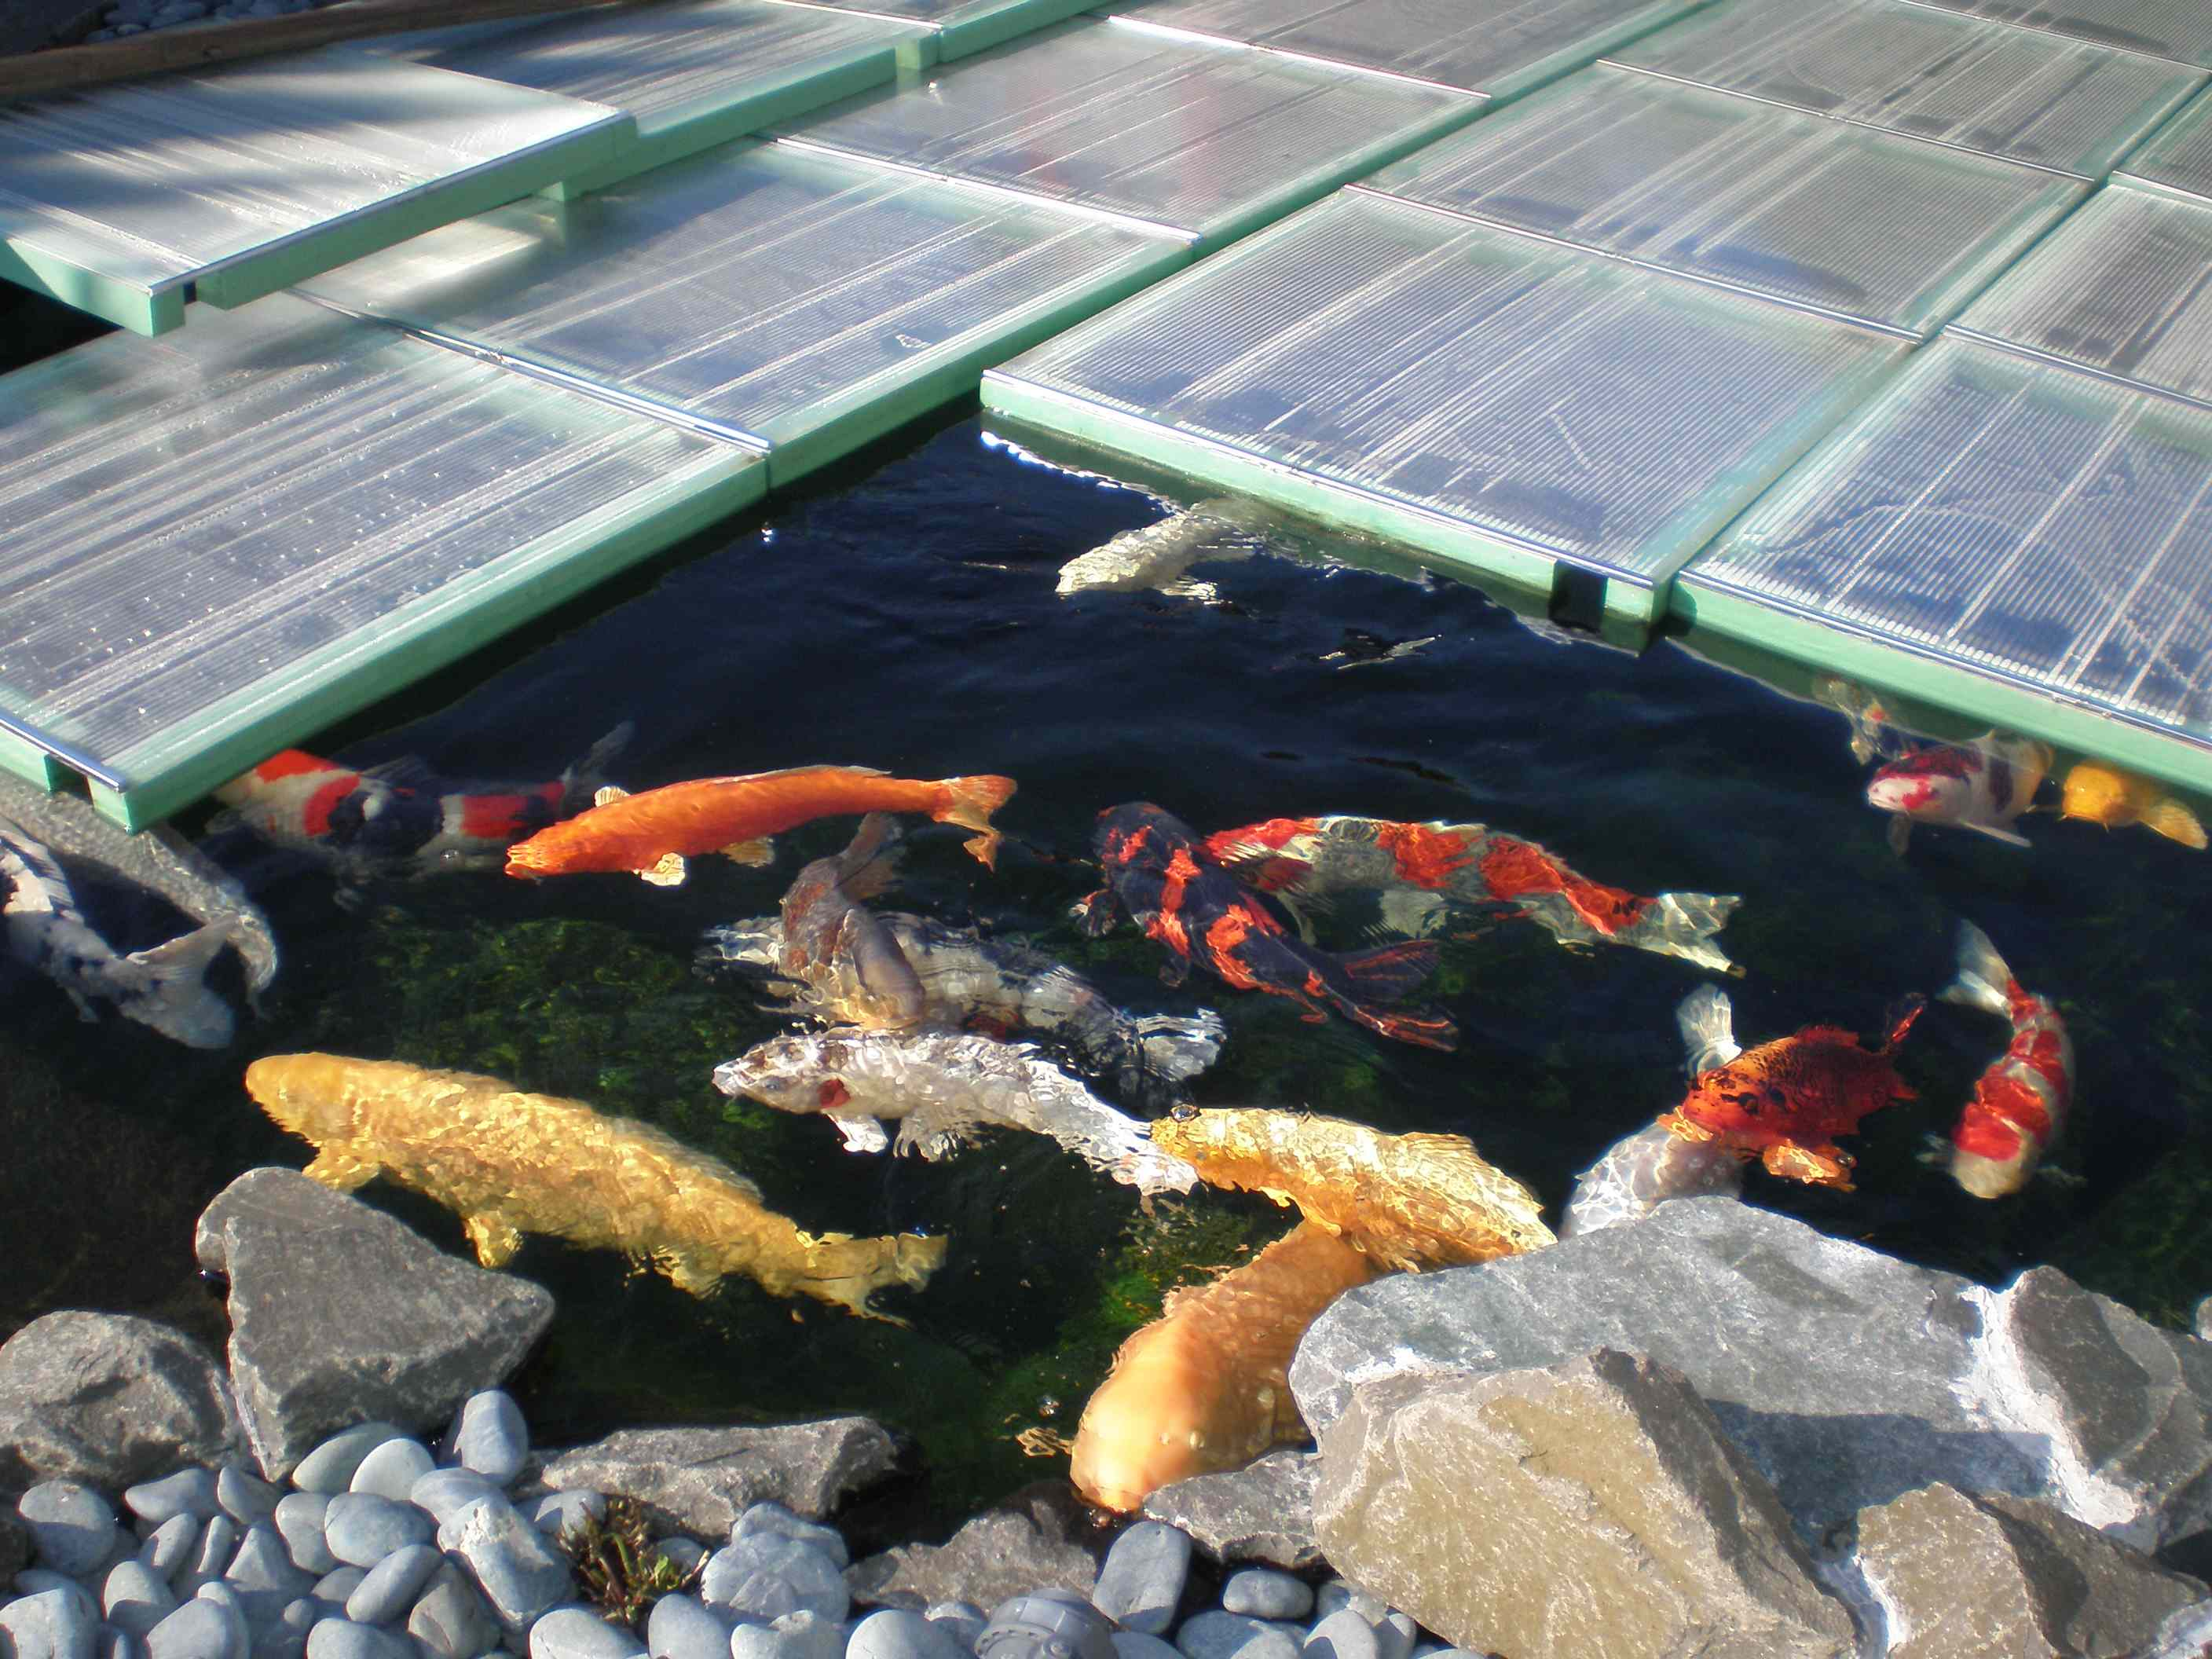 Fishcare uv im winter ausschalten for Koi teich winter